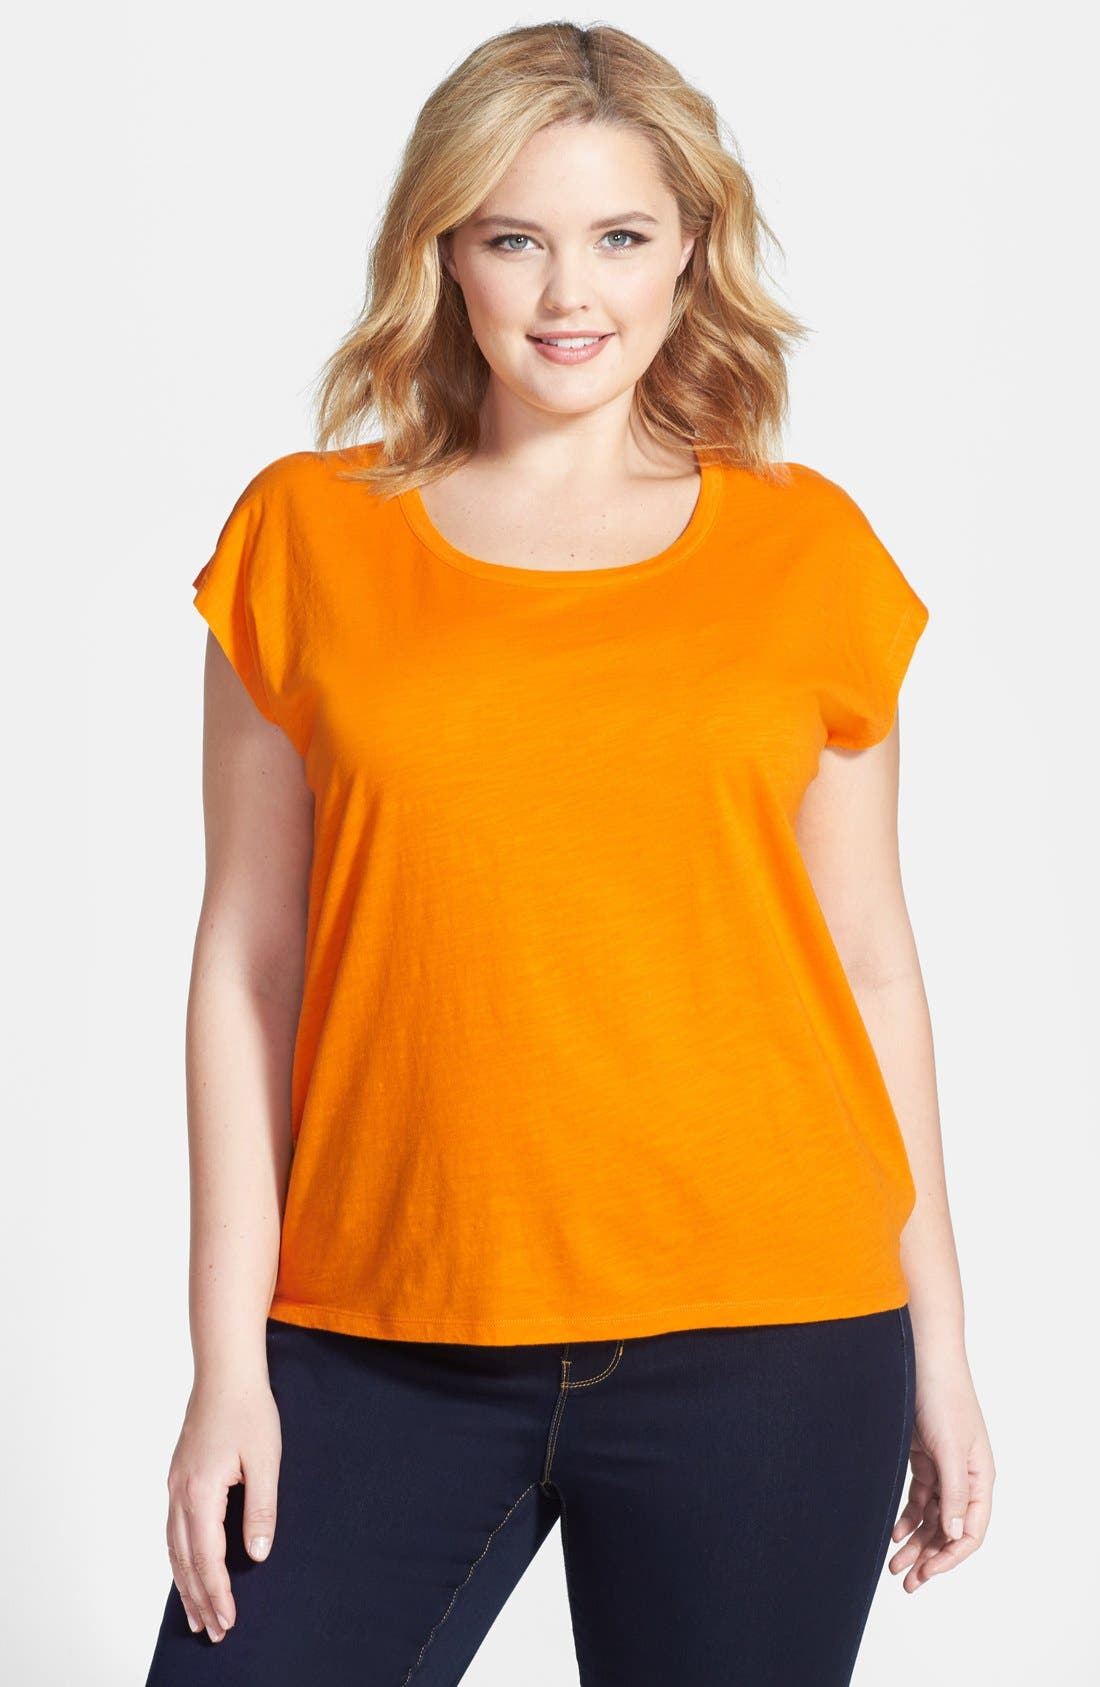 Alternate Image 1 Selected - MICHAEL Michael Kors Slubbed Cotton High/Low Tee (Plus Size)